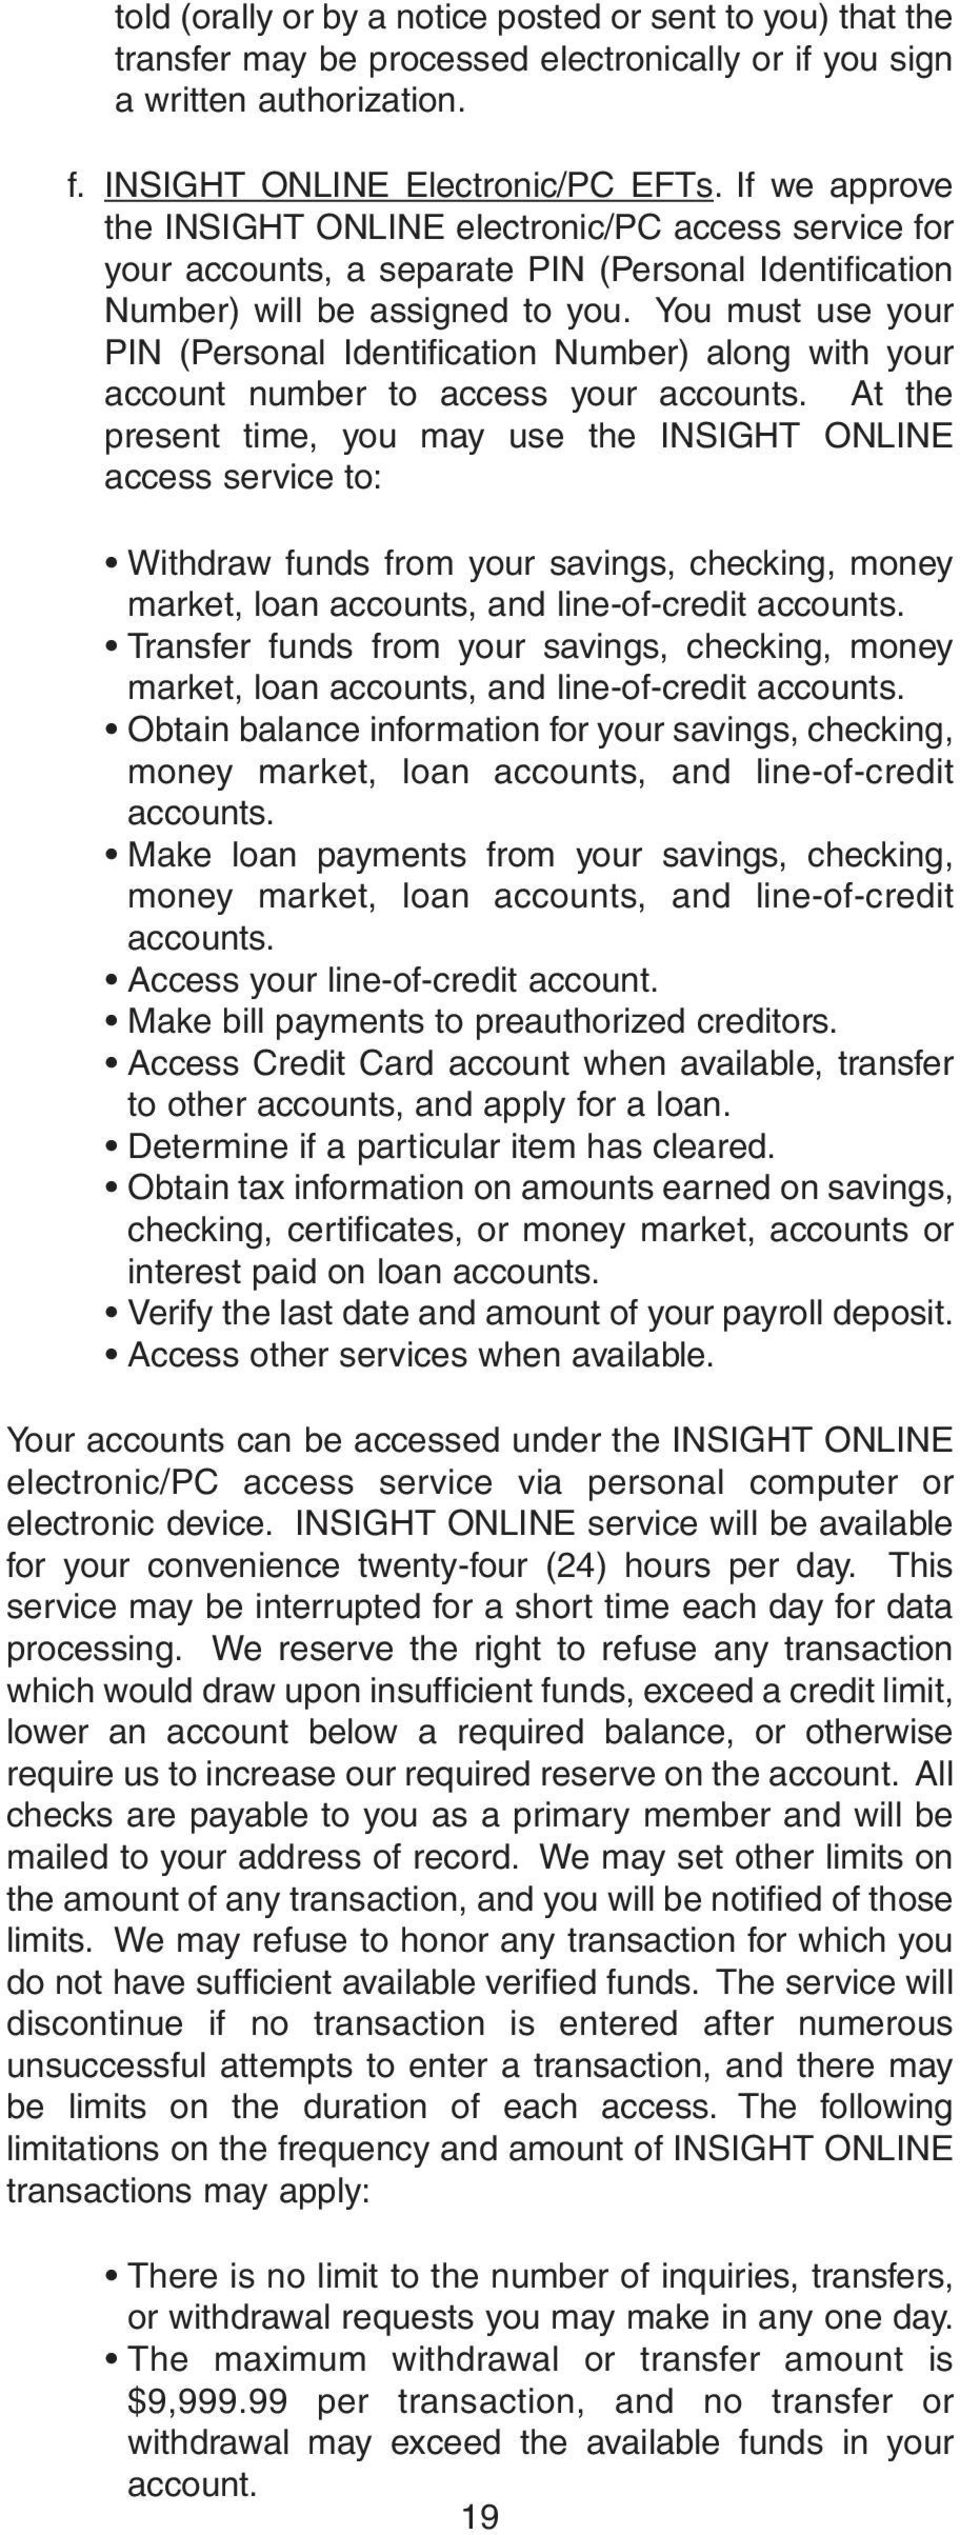 You must use your PIN (Personal Identification Number) along with your account number to access your At the present time, you may use the INSIGHT ONLINE access service to: Withdraw funds from your